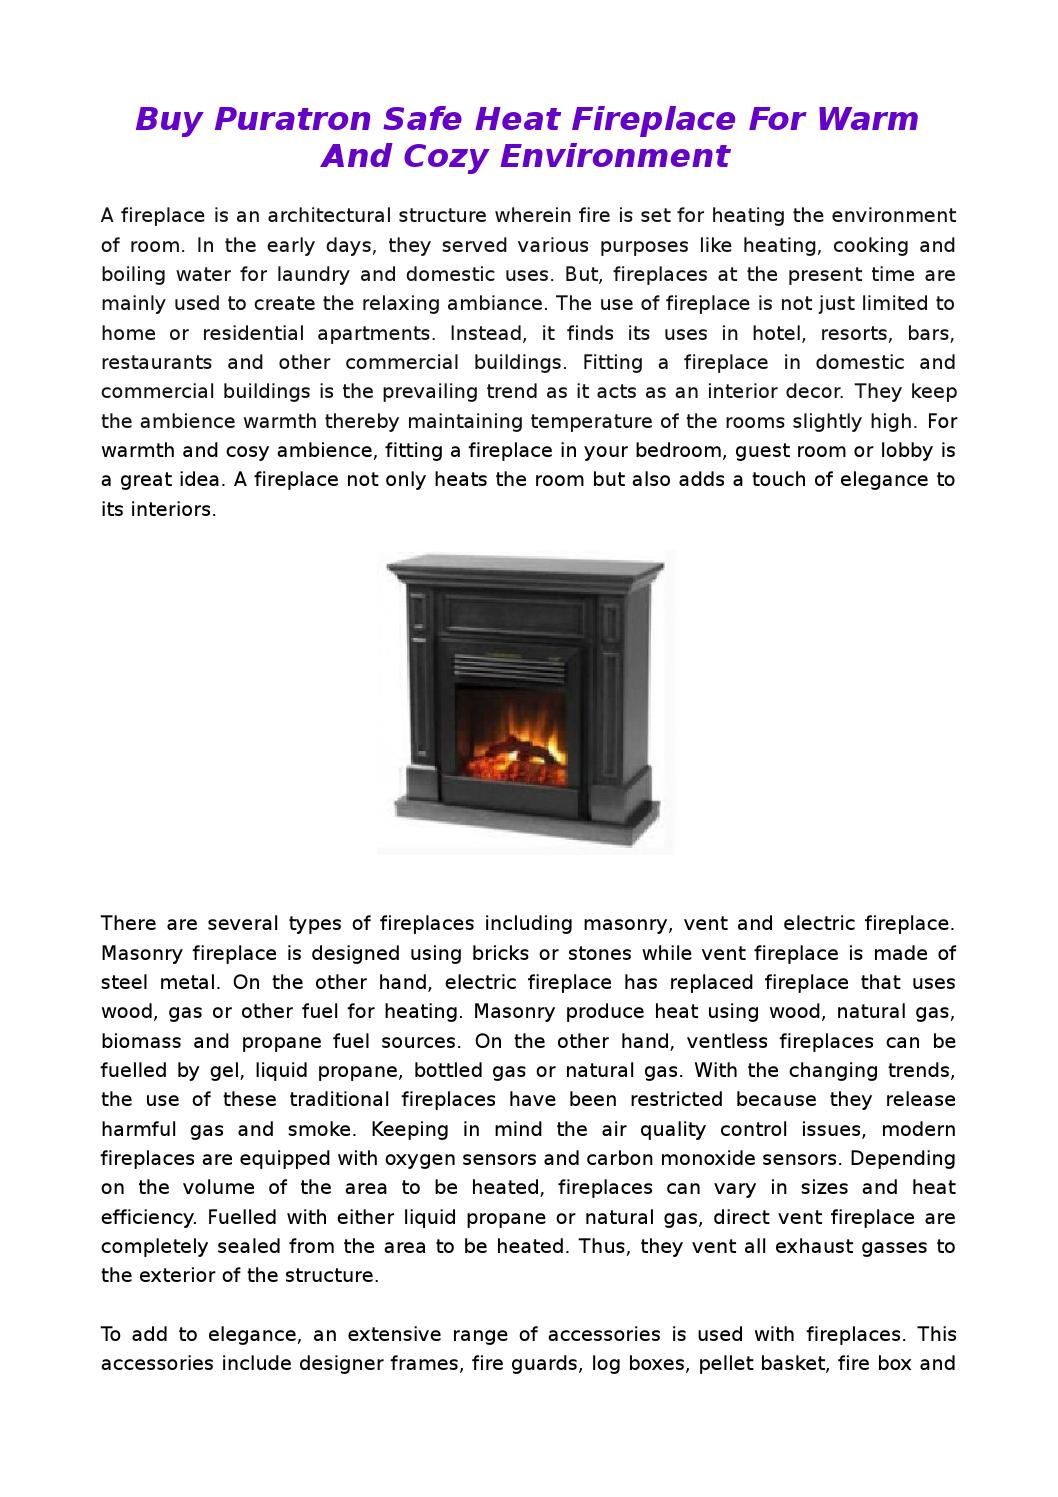 Superb Puratron Fireplace Insert Part - 7: Buy Puratron Safe Heat Fireplace For Warm And Cozy Environment By Caitlin  Melba - Issuu